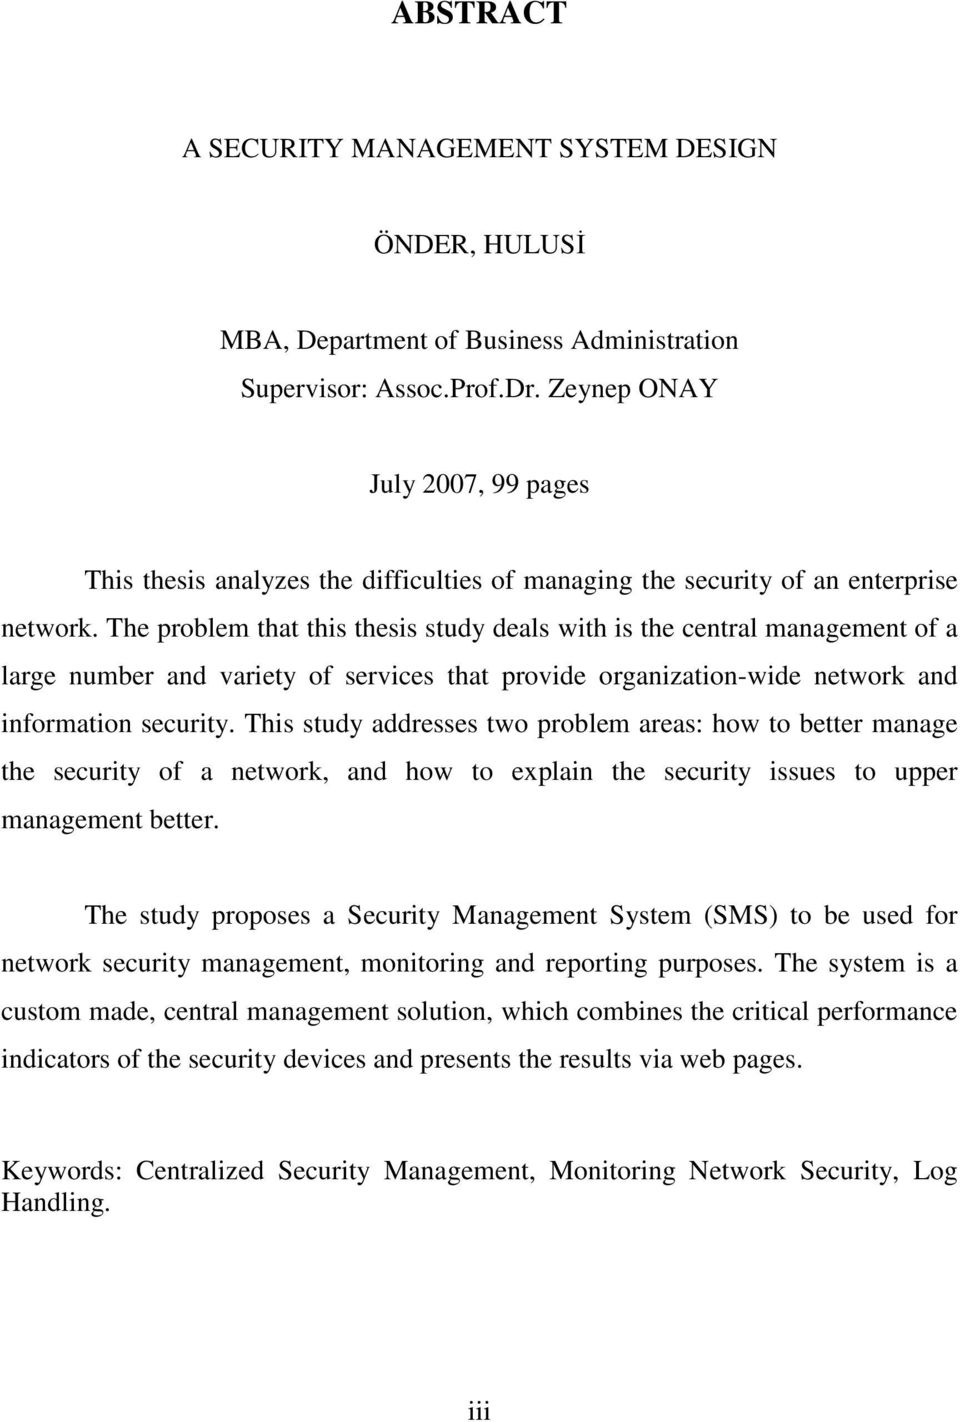 The problem that this thesis study deals with is the central management of a large number and variety of services that provide organization-wide network and information security.